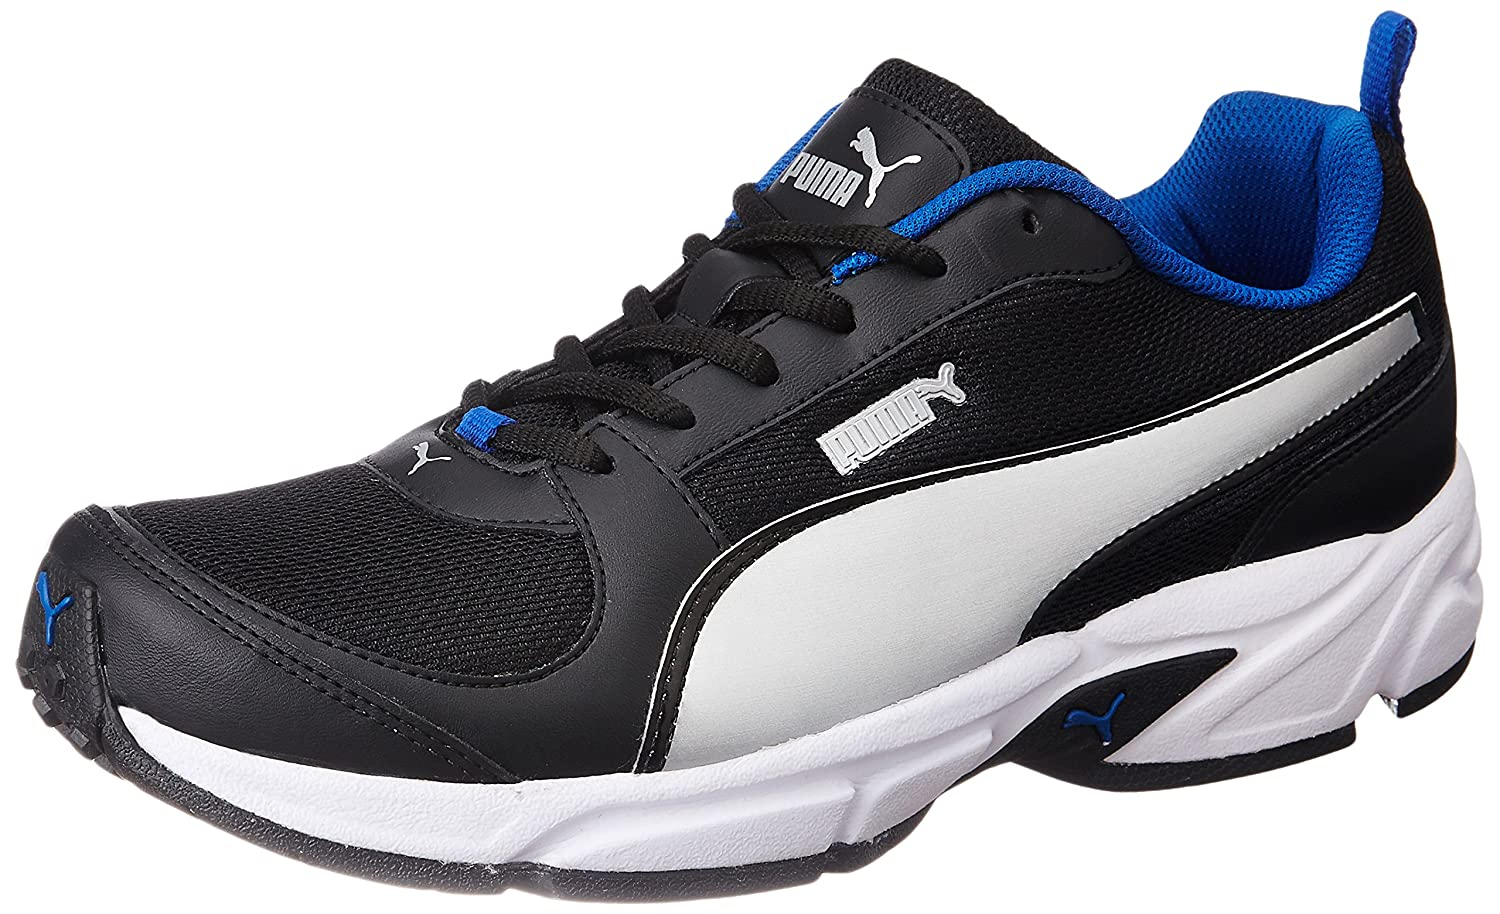 Puma Agility IDP Running Shoes For Men